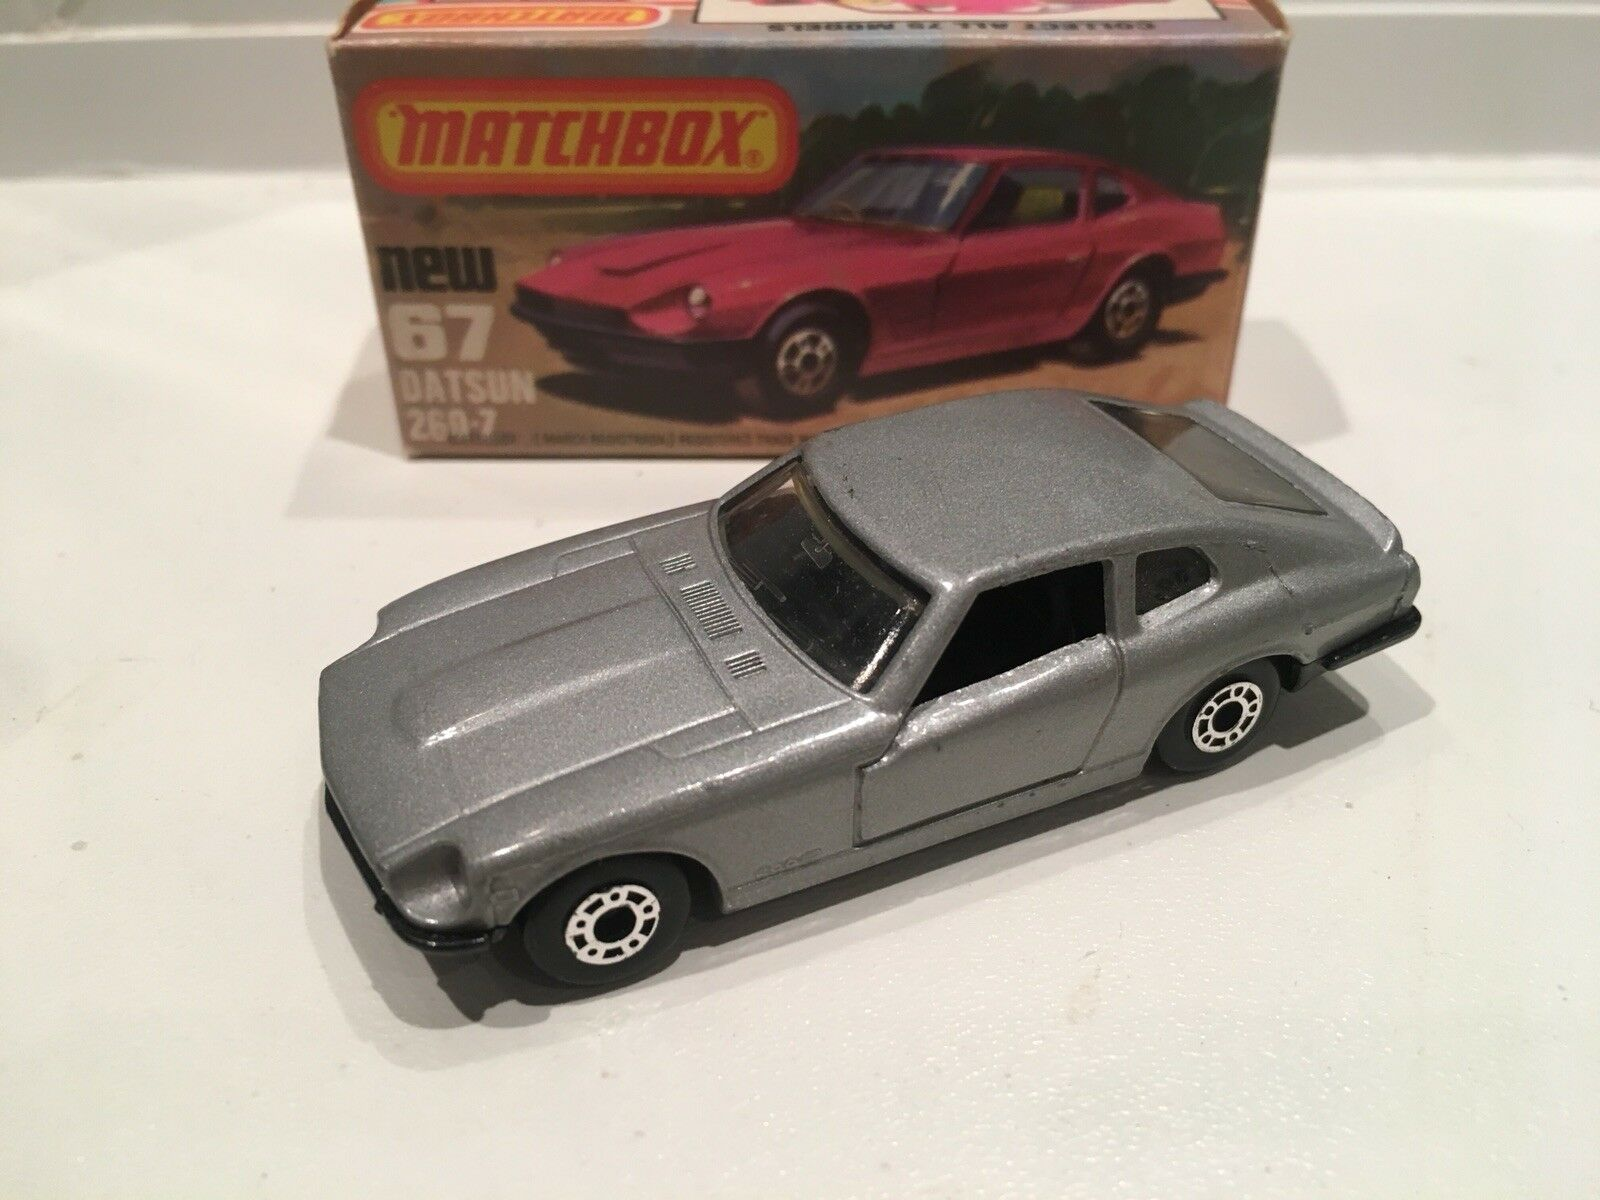 Matchbox superfast Datsun No67 Boxed.  Very Rare Version.